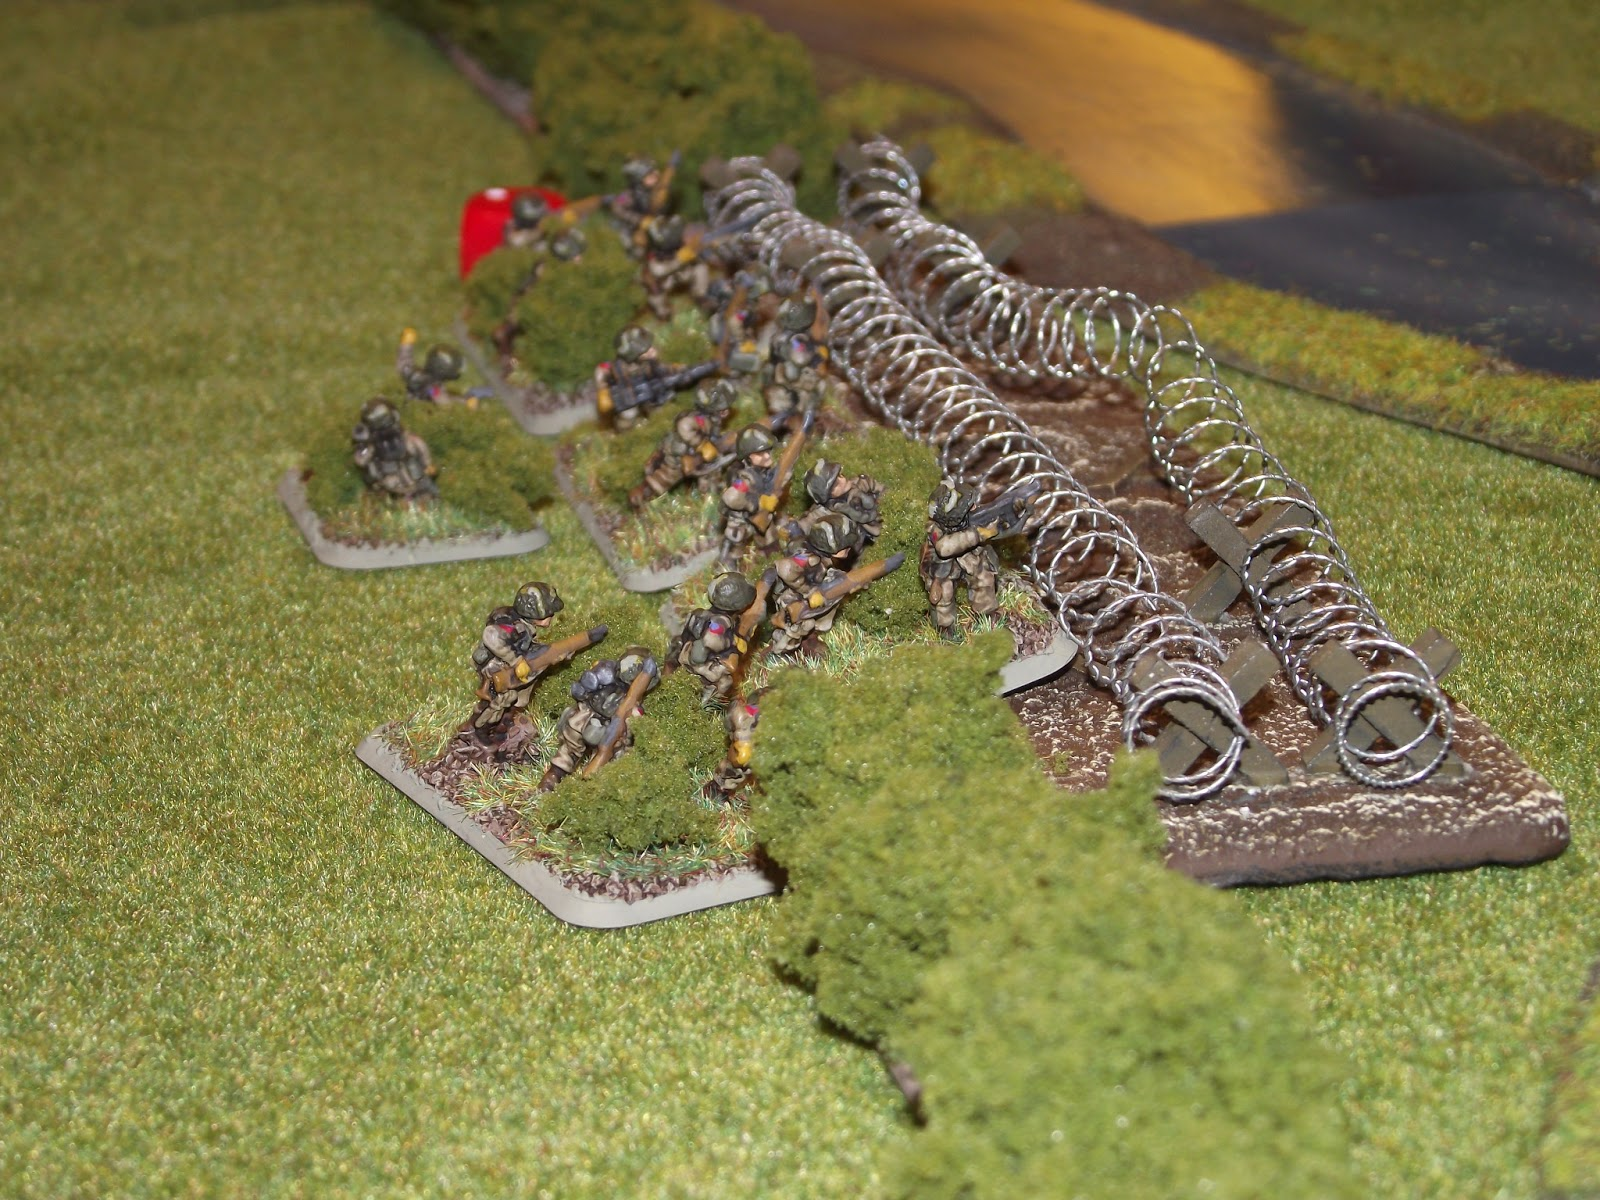 Paras tied up on the barbed wire. The Germans would pepper them with MG fire and force them back.